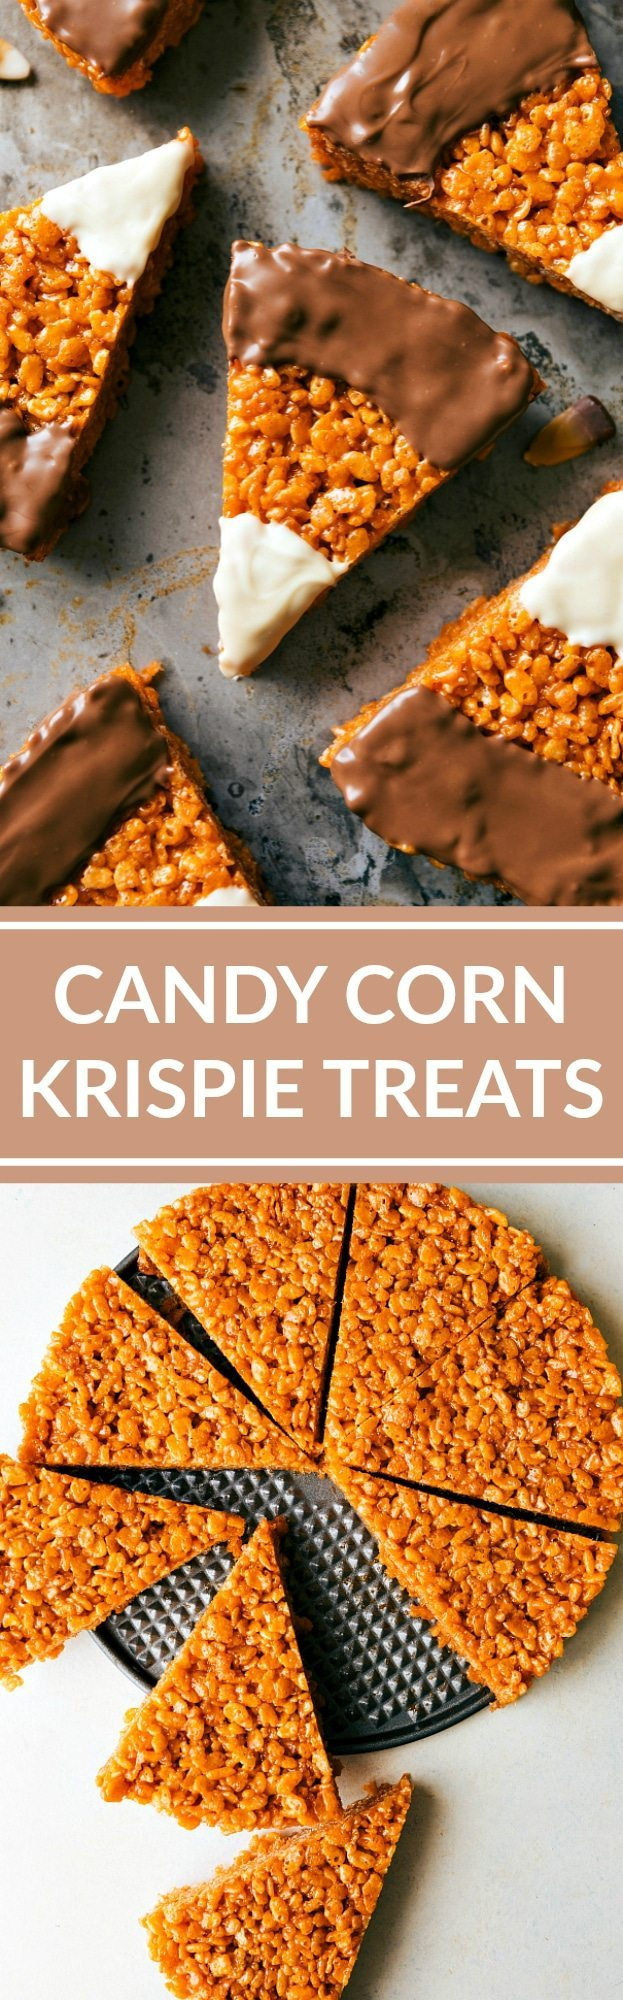 CANDY CORN KRISPIE TREATS! The absolute best peanut butter krispie treats decorated to look like candy corns with melted white and milk chocolate topping! Recipe via chelseasmessyapron.com